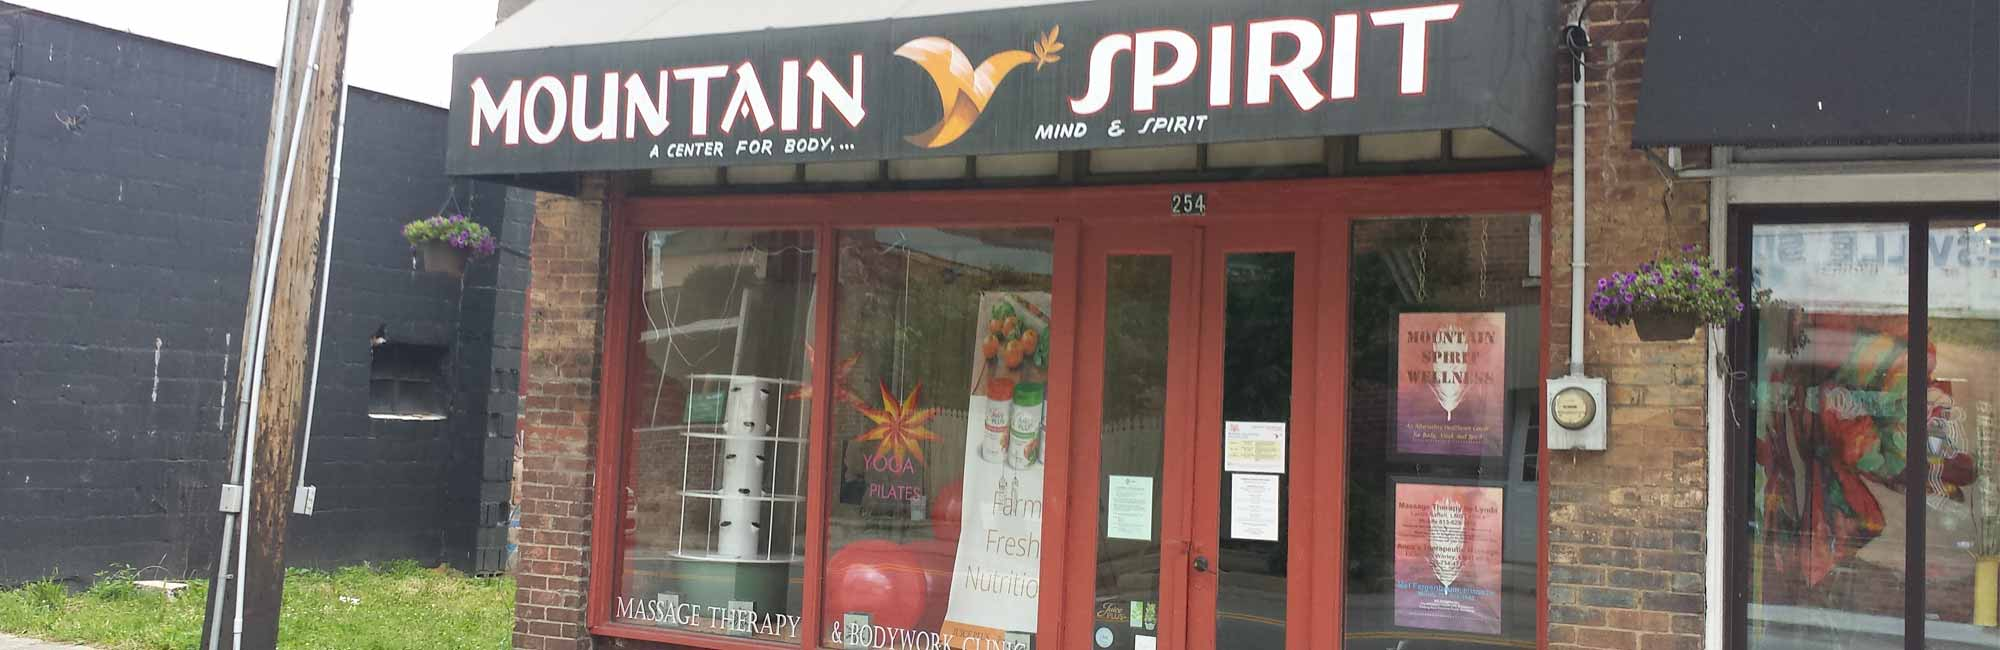 Waynesville_NC_Mountain_Spirit_Wellness